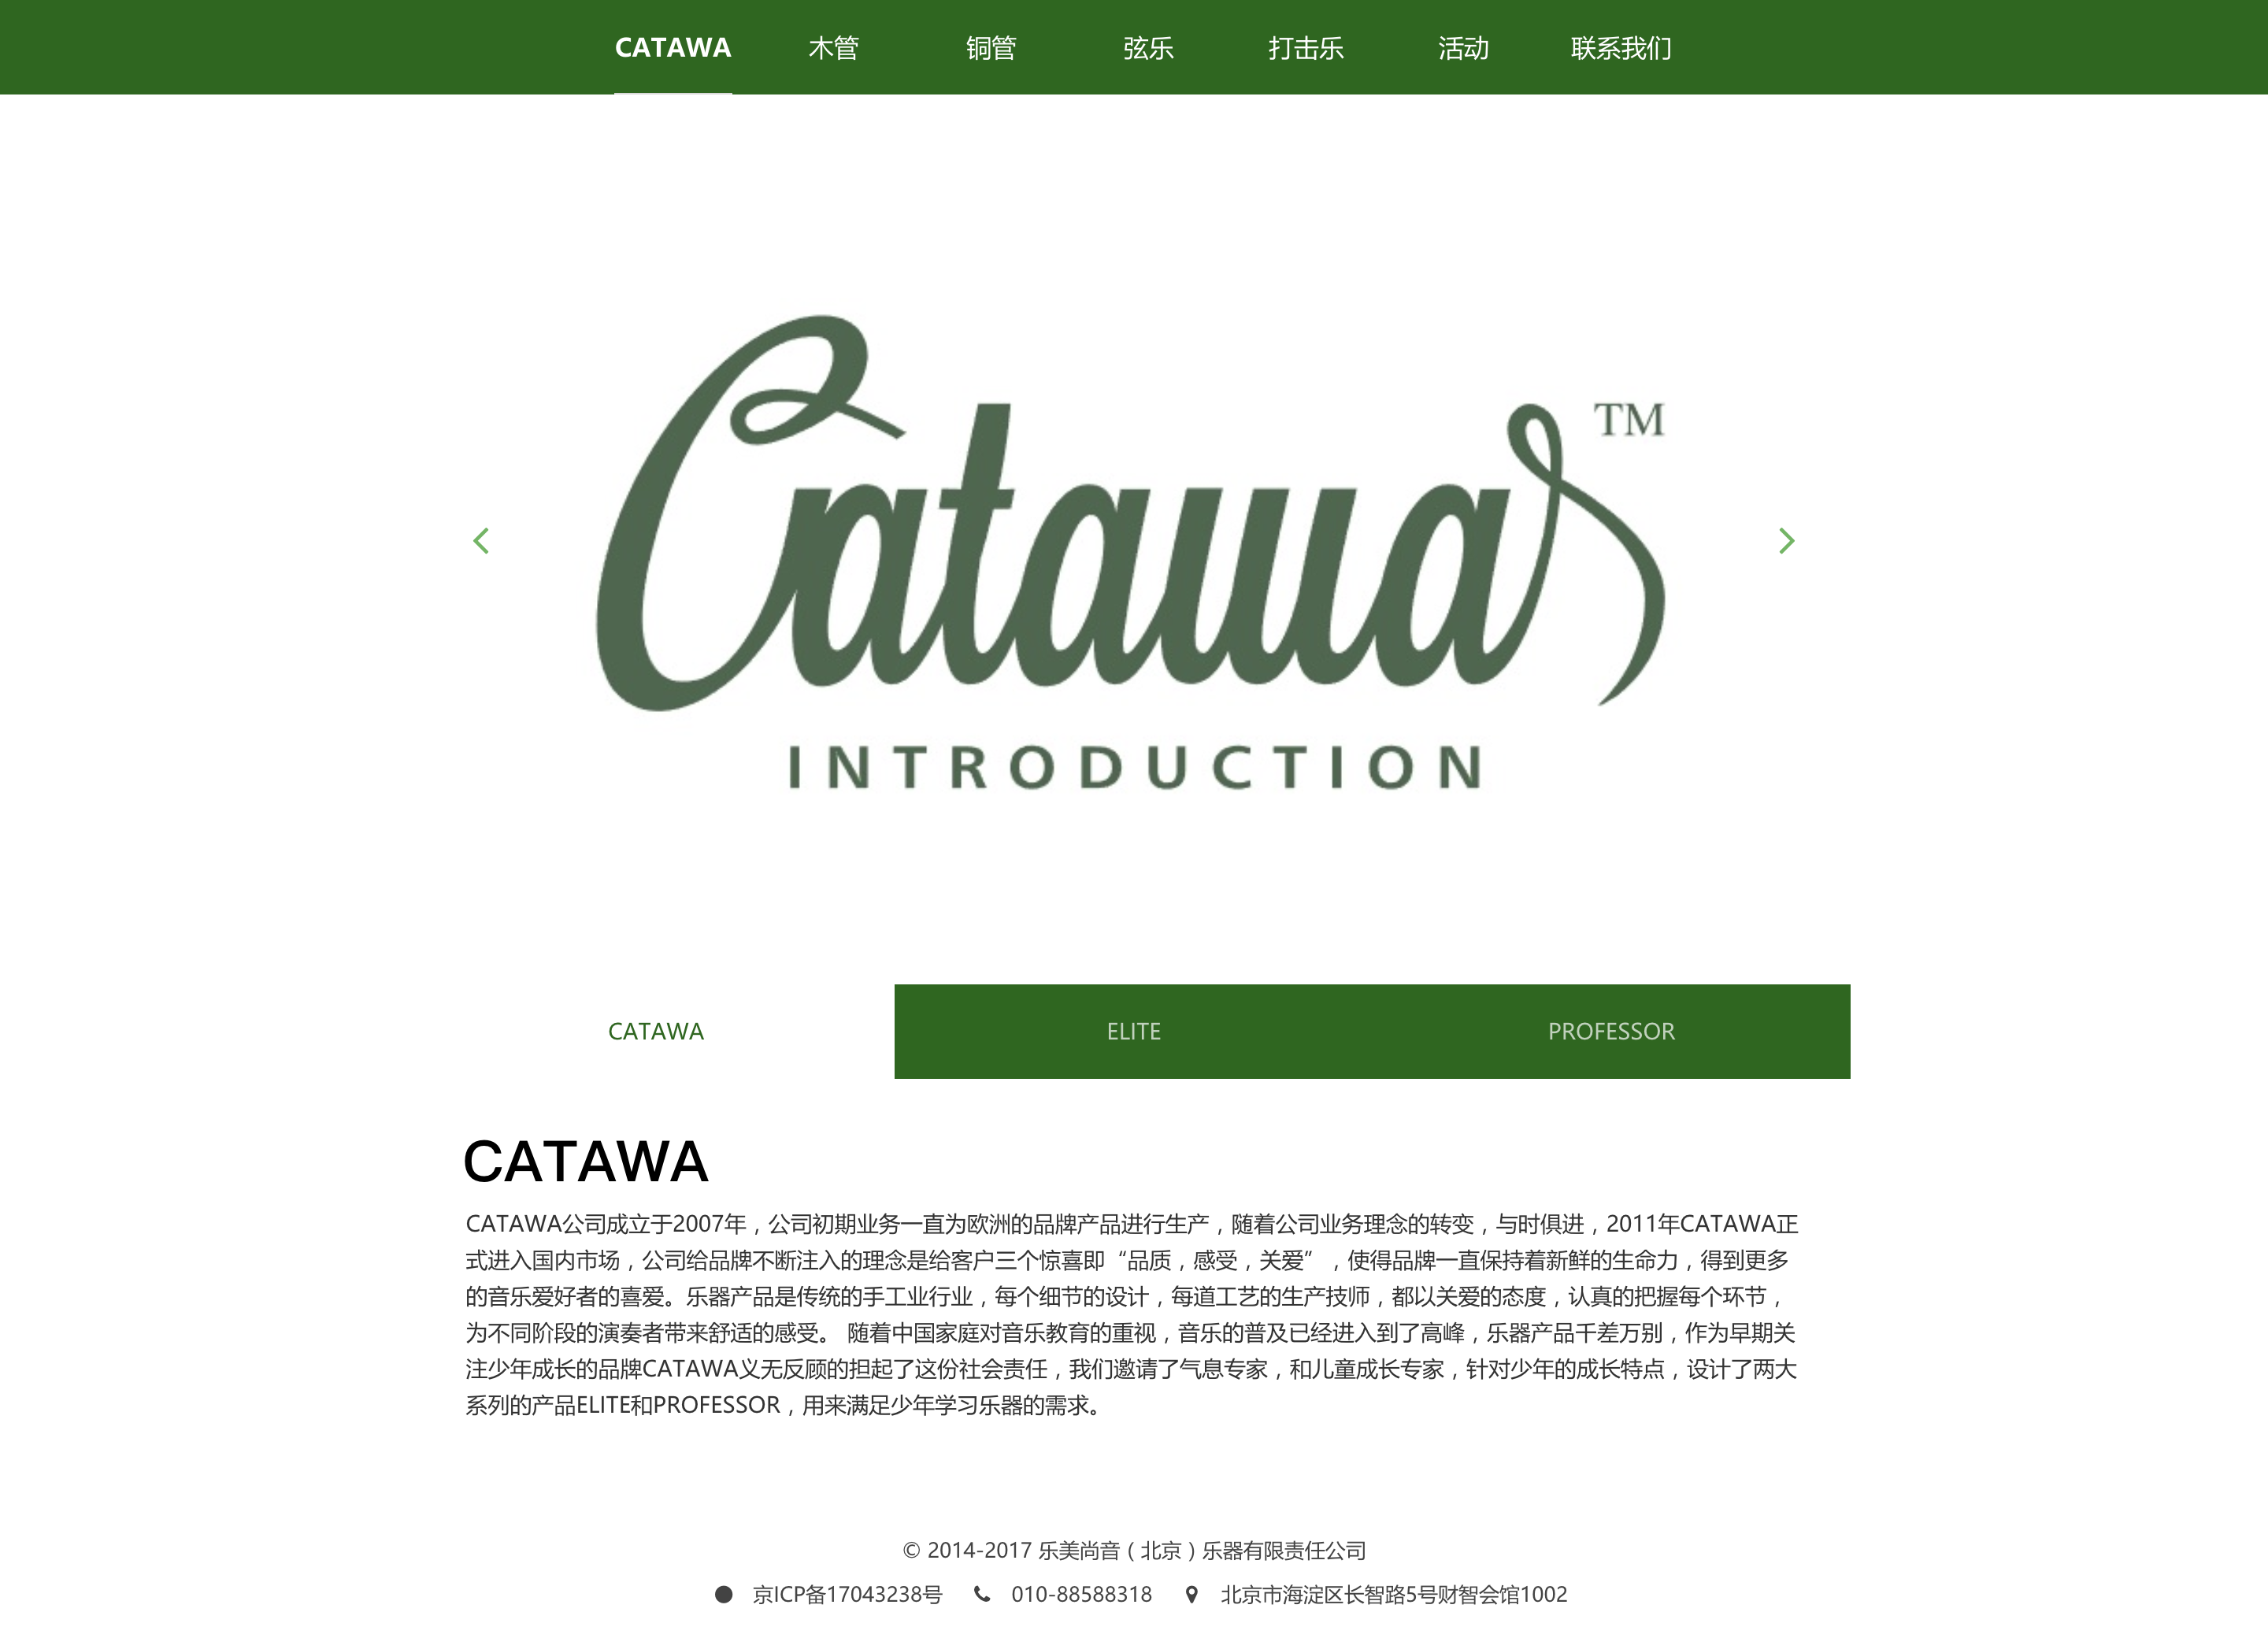 screencapture-file-Users-lyting1101-Downloads-Work-2-3-catawa-catawa-index-html-2018-09-18-09_21_14